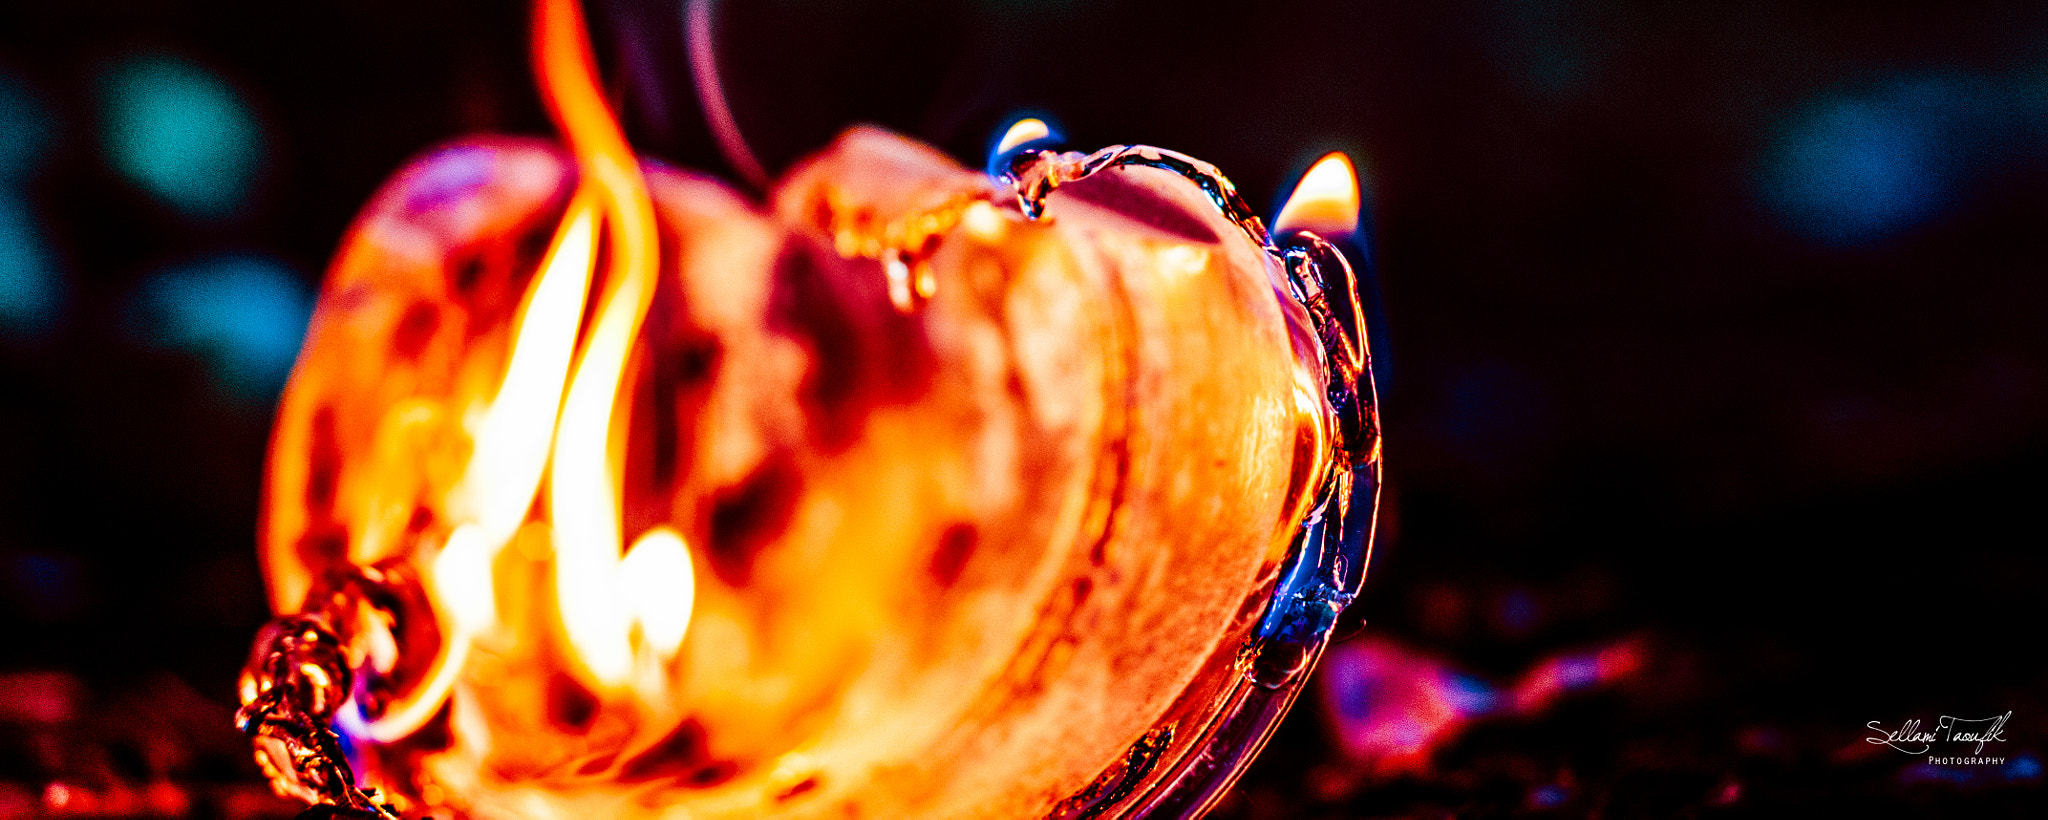 Photograph Melting by Taoufik Sellami on 500px